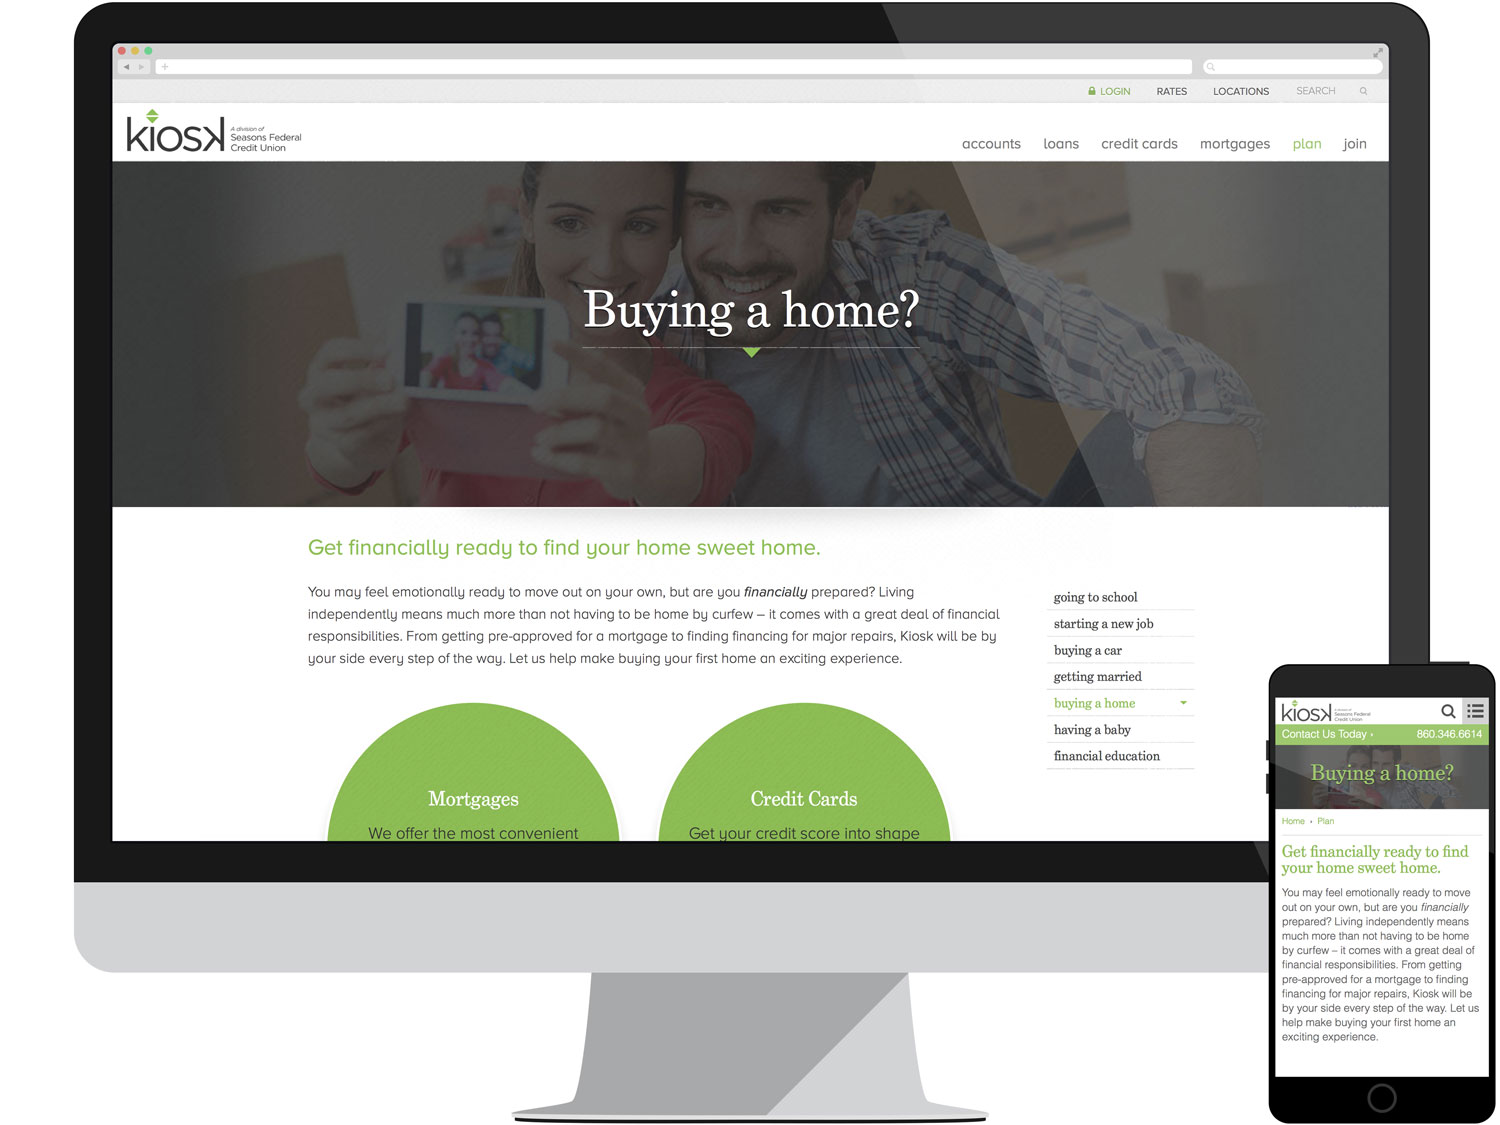 Landing Page - Home